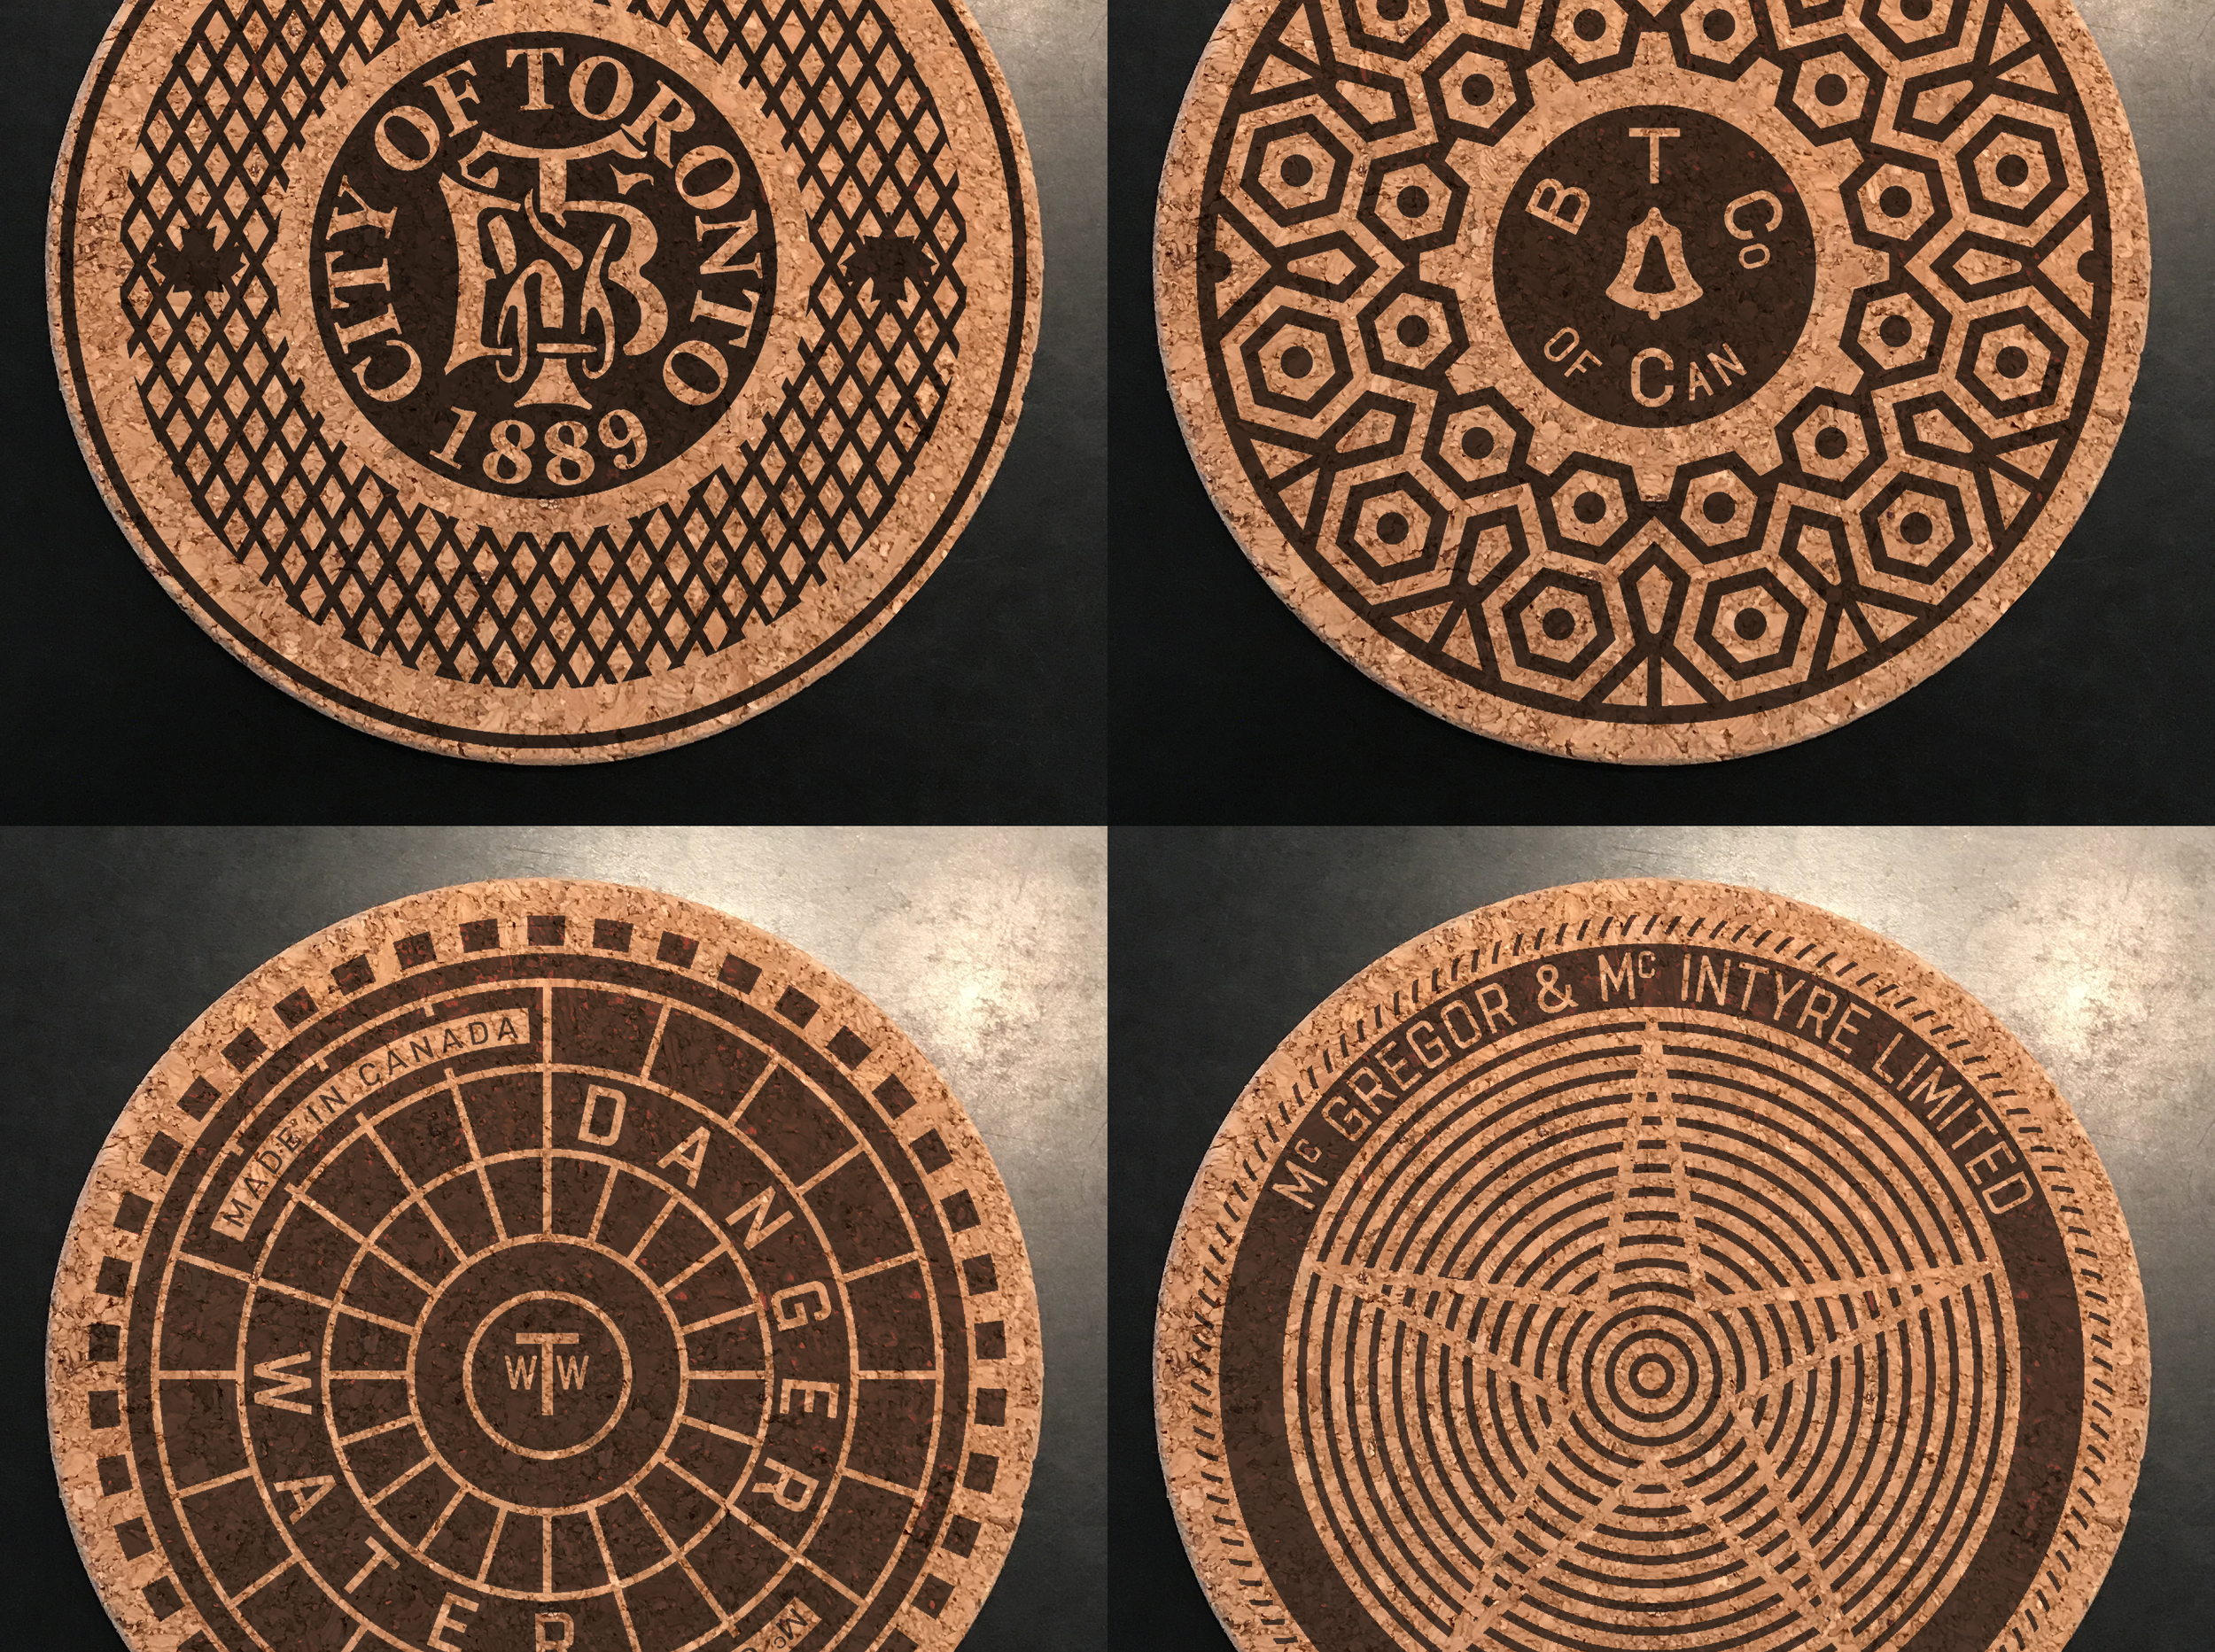 see the 6ix coasters and trivets at The art gallery of ontario. - Visit the AGO in Toronto to purchase them; just not at 5am.